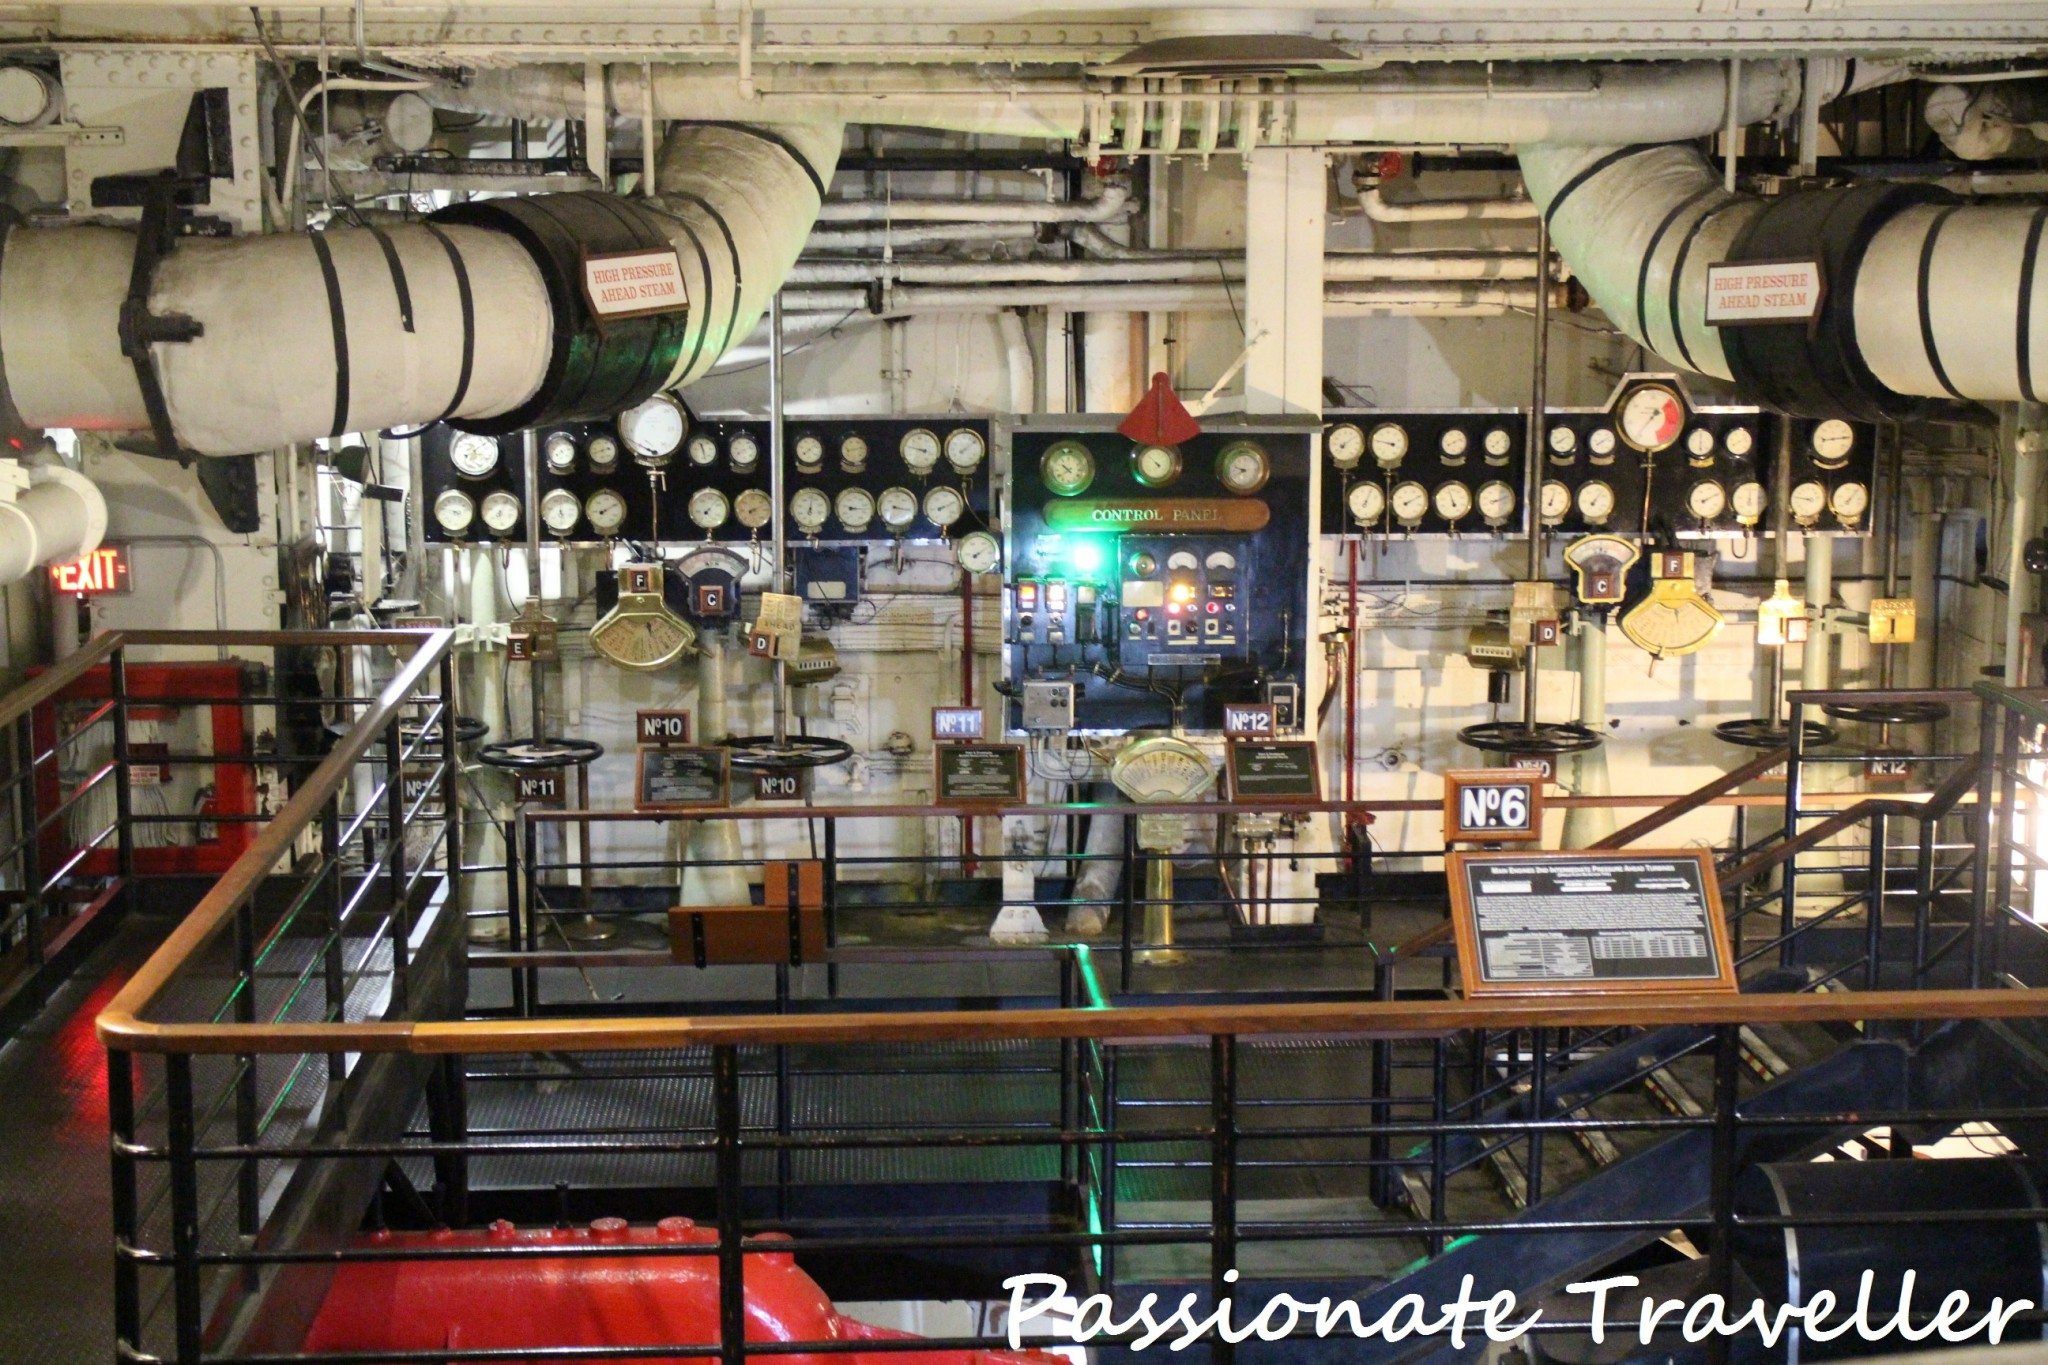 Queen Mary Engine Room 1